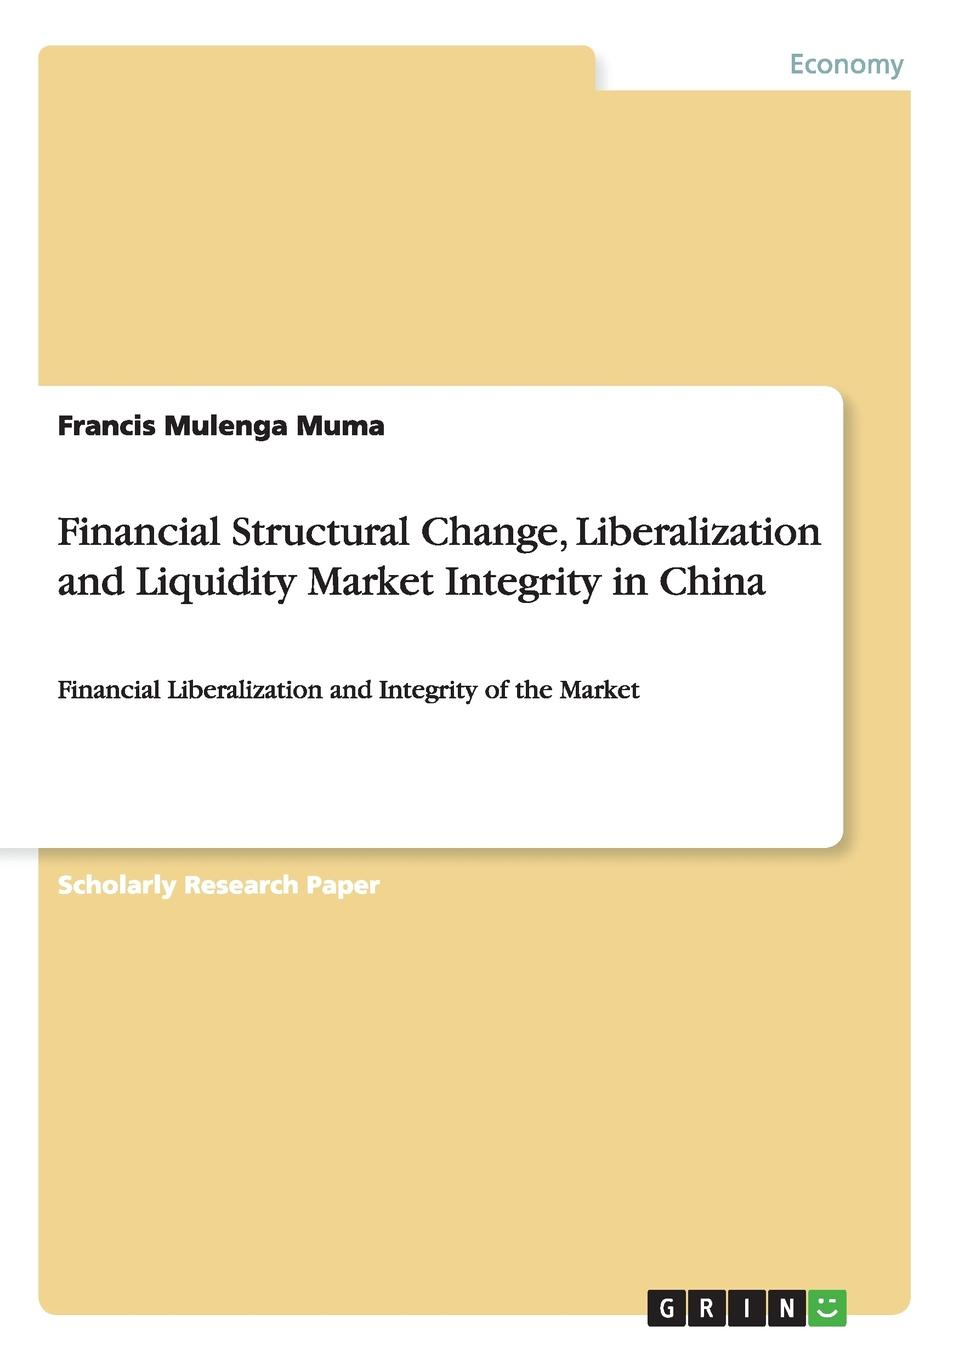 Francis Mulenga Muma Financial Structural Change, Liberalization and Liquidity Market Integrity in China andrew sheng shadow banking in china an opportunity for financial reform